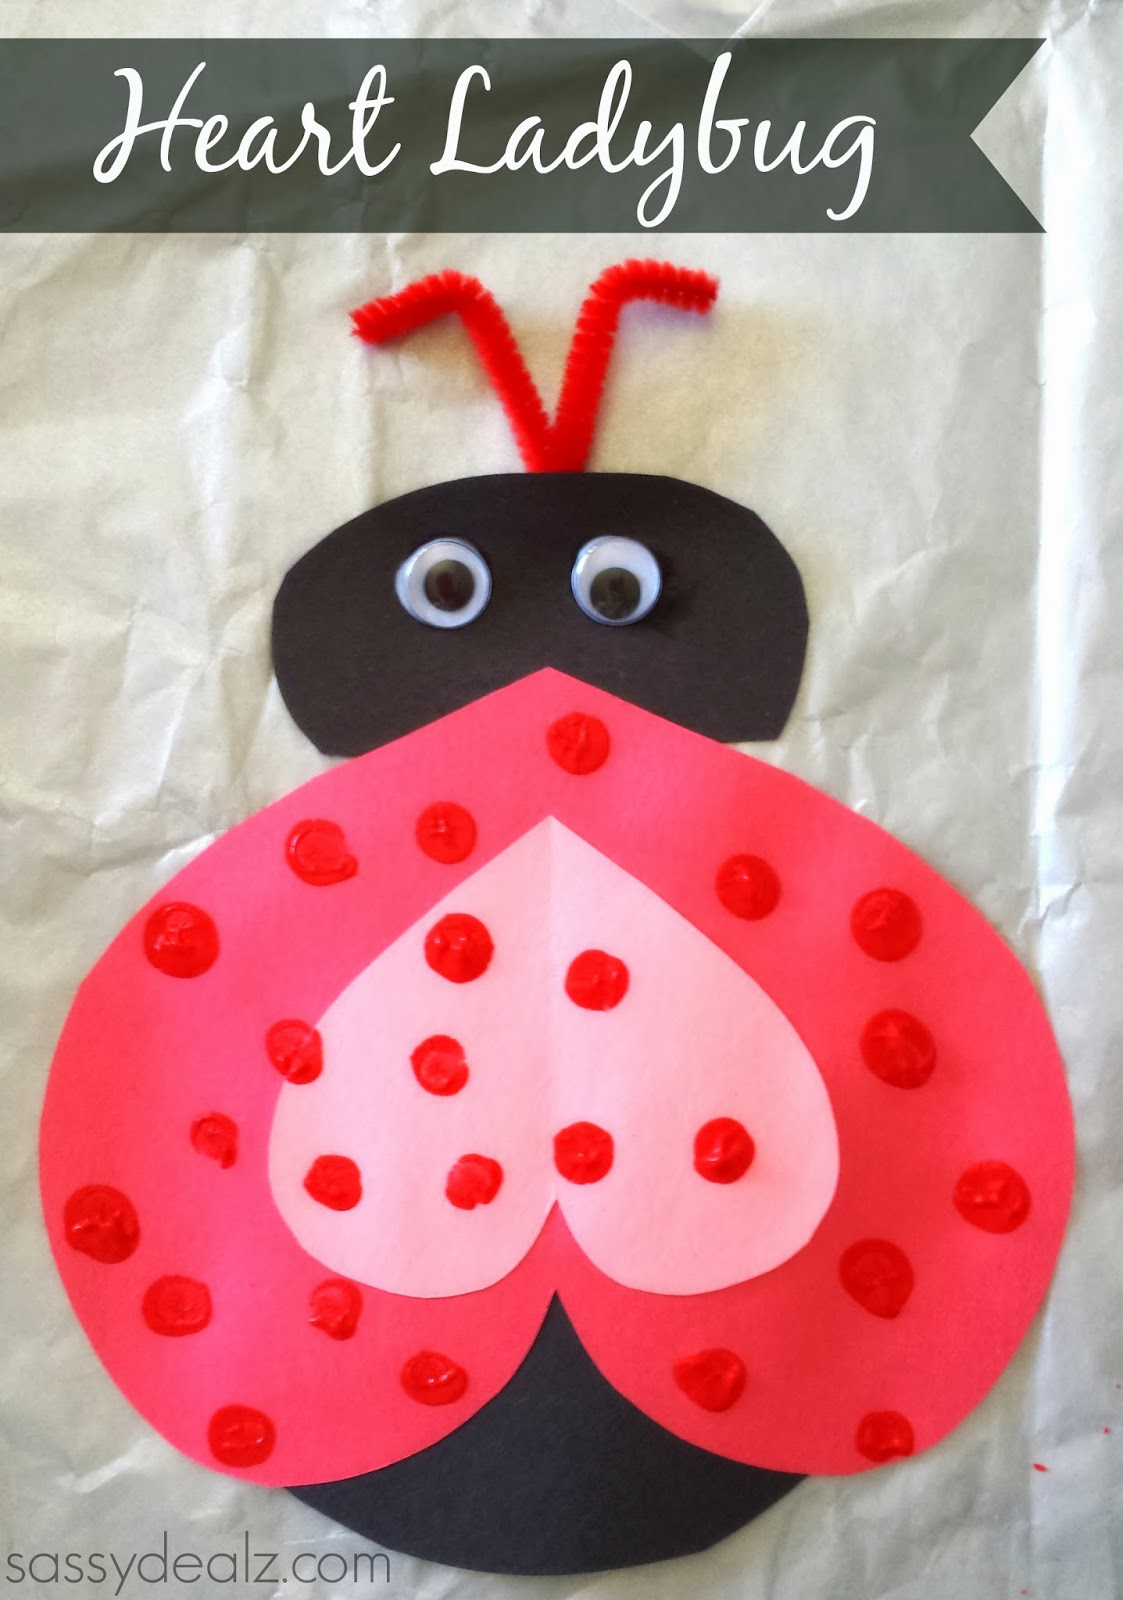 Heart ladybug valentines day craft for kids crafty morning for Valentine day crafts for kids